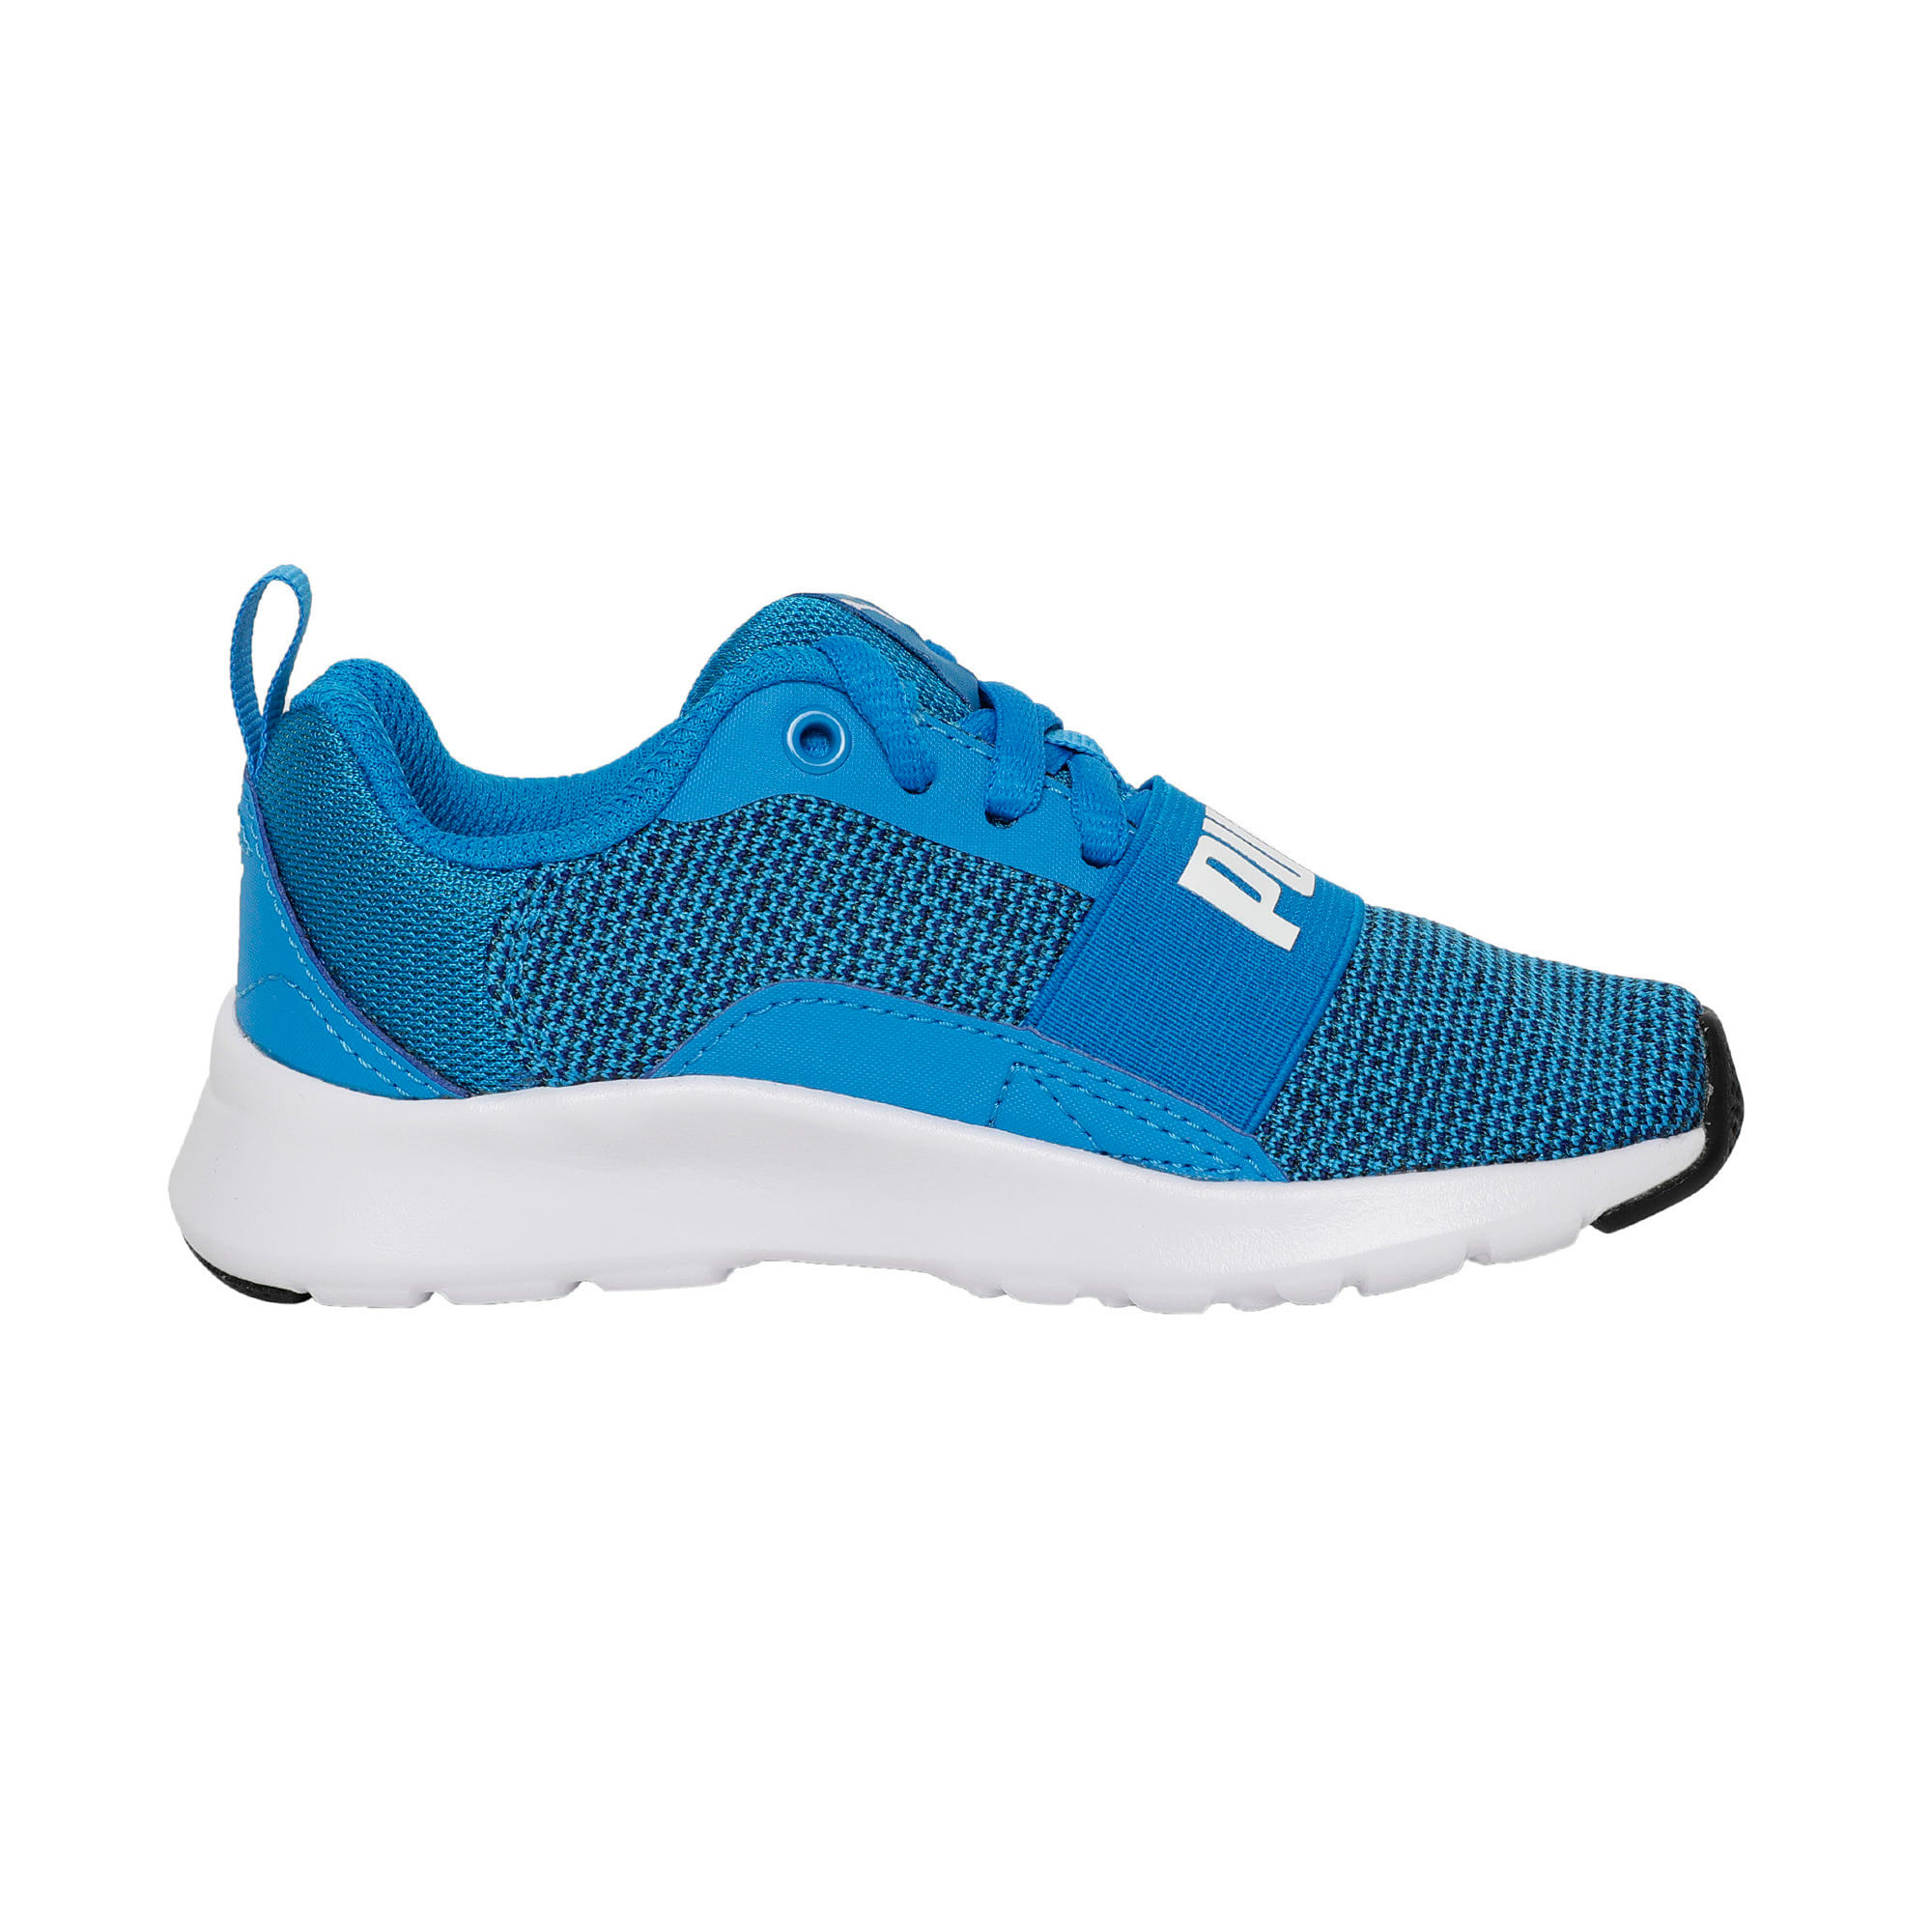 Thumbnail 5 of Wired Knit Kids' Trainers, Indigo Bunting-Puma White, medium-IND